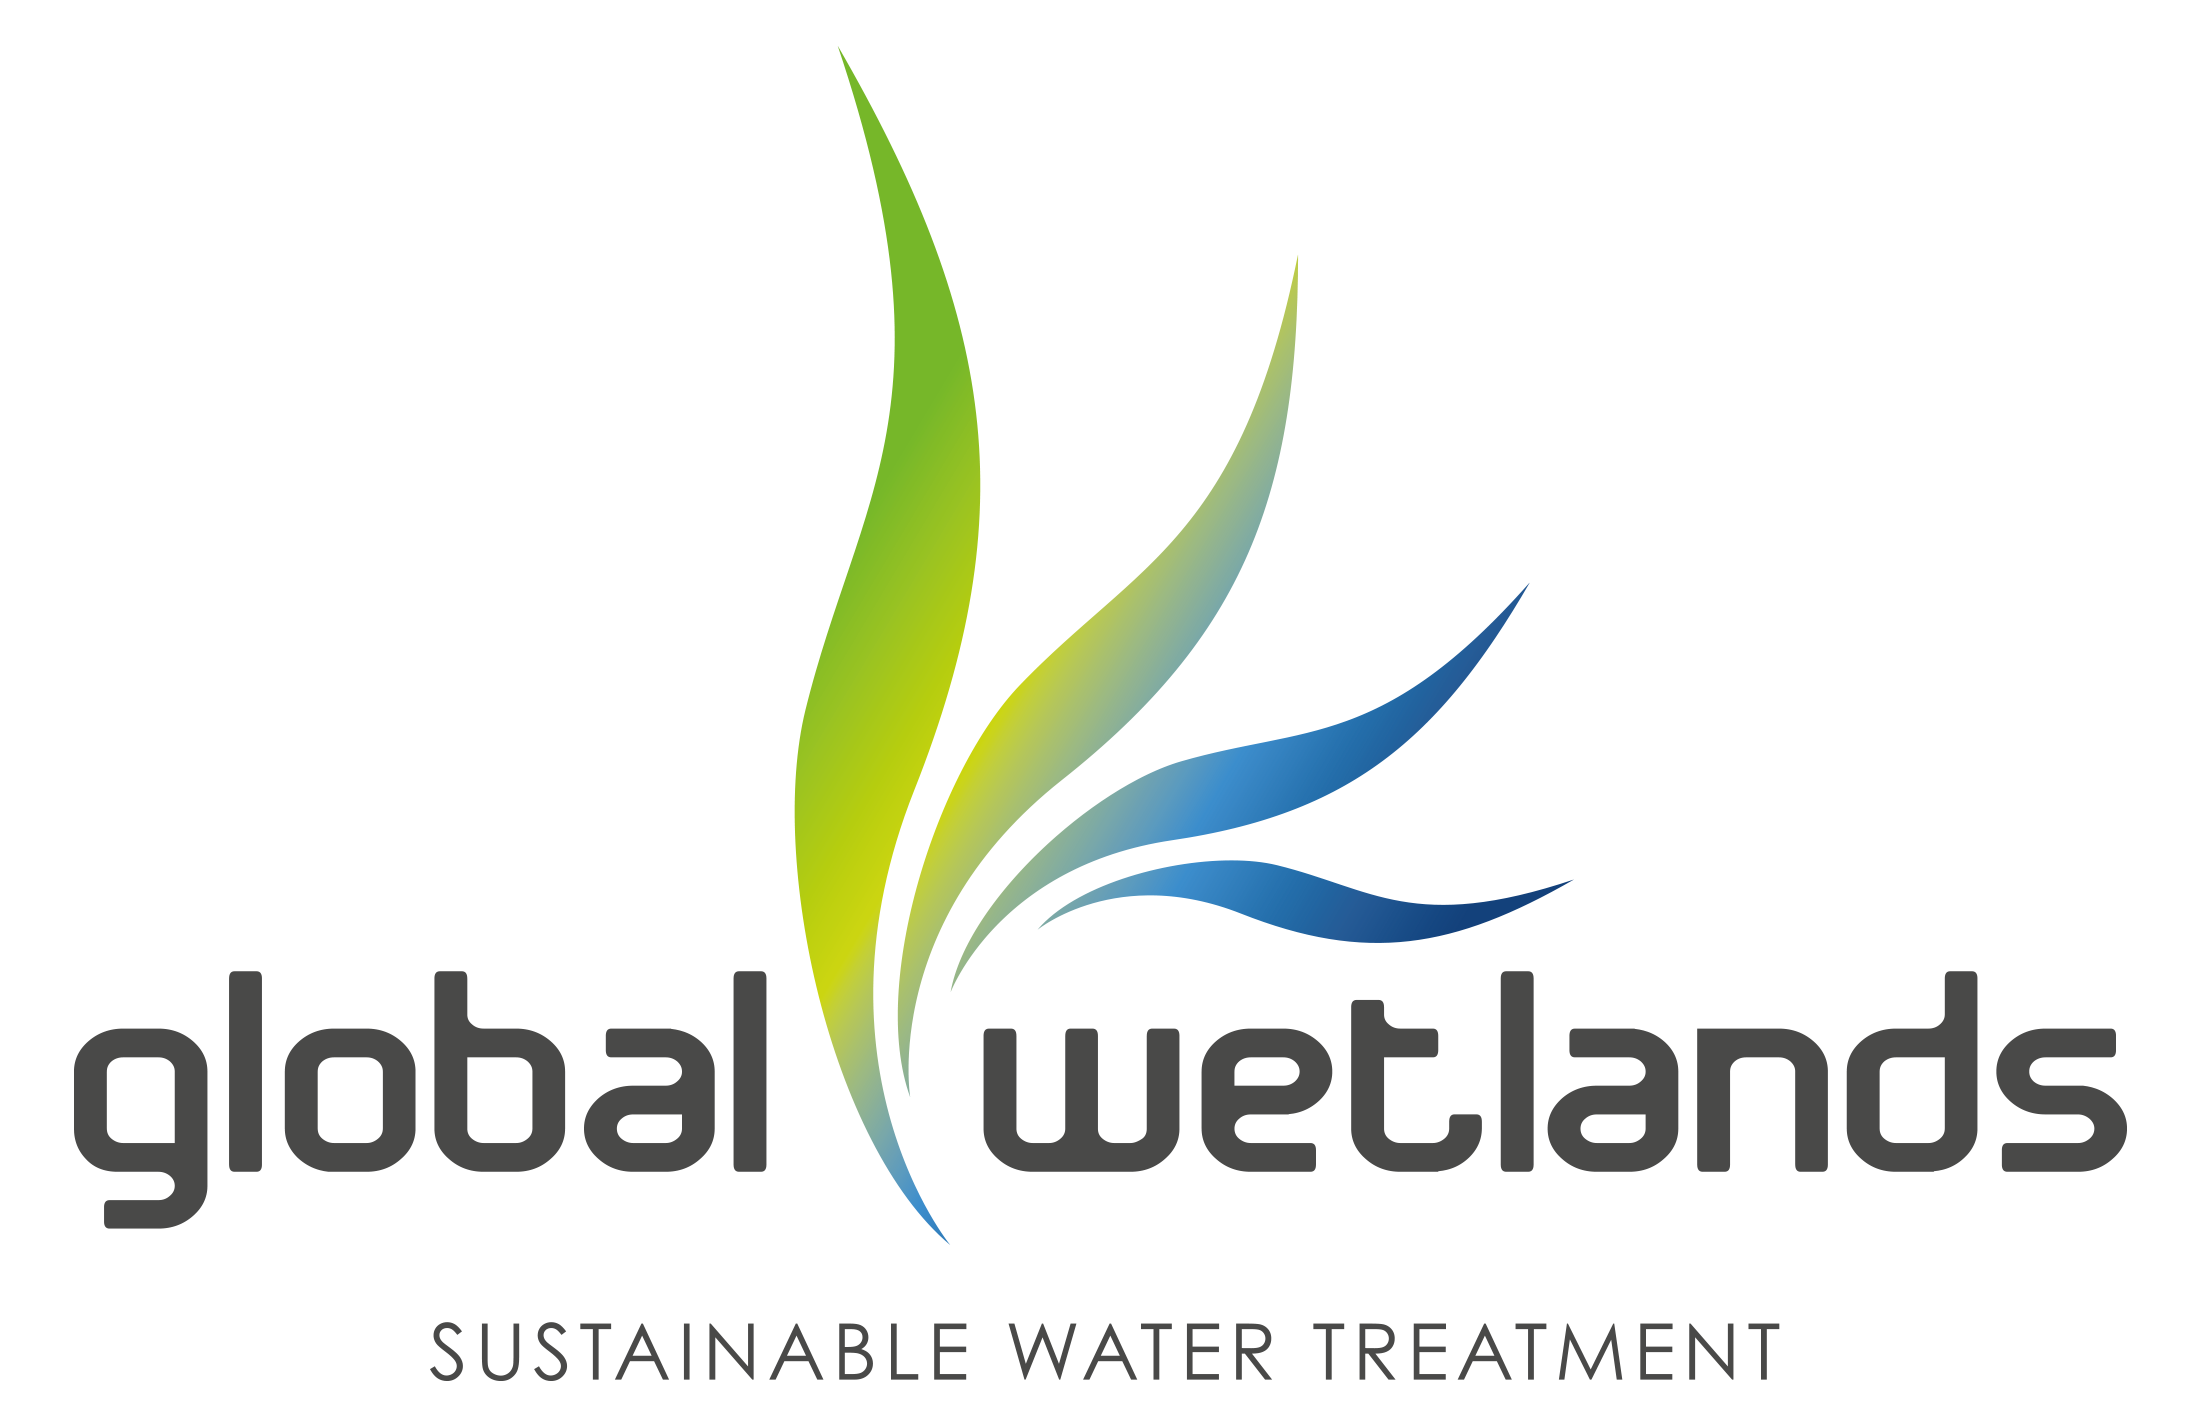 Global-Wetlands-logo sustainable